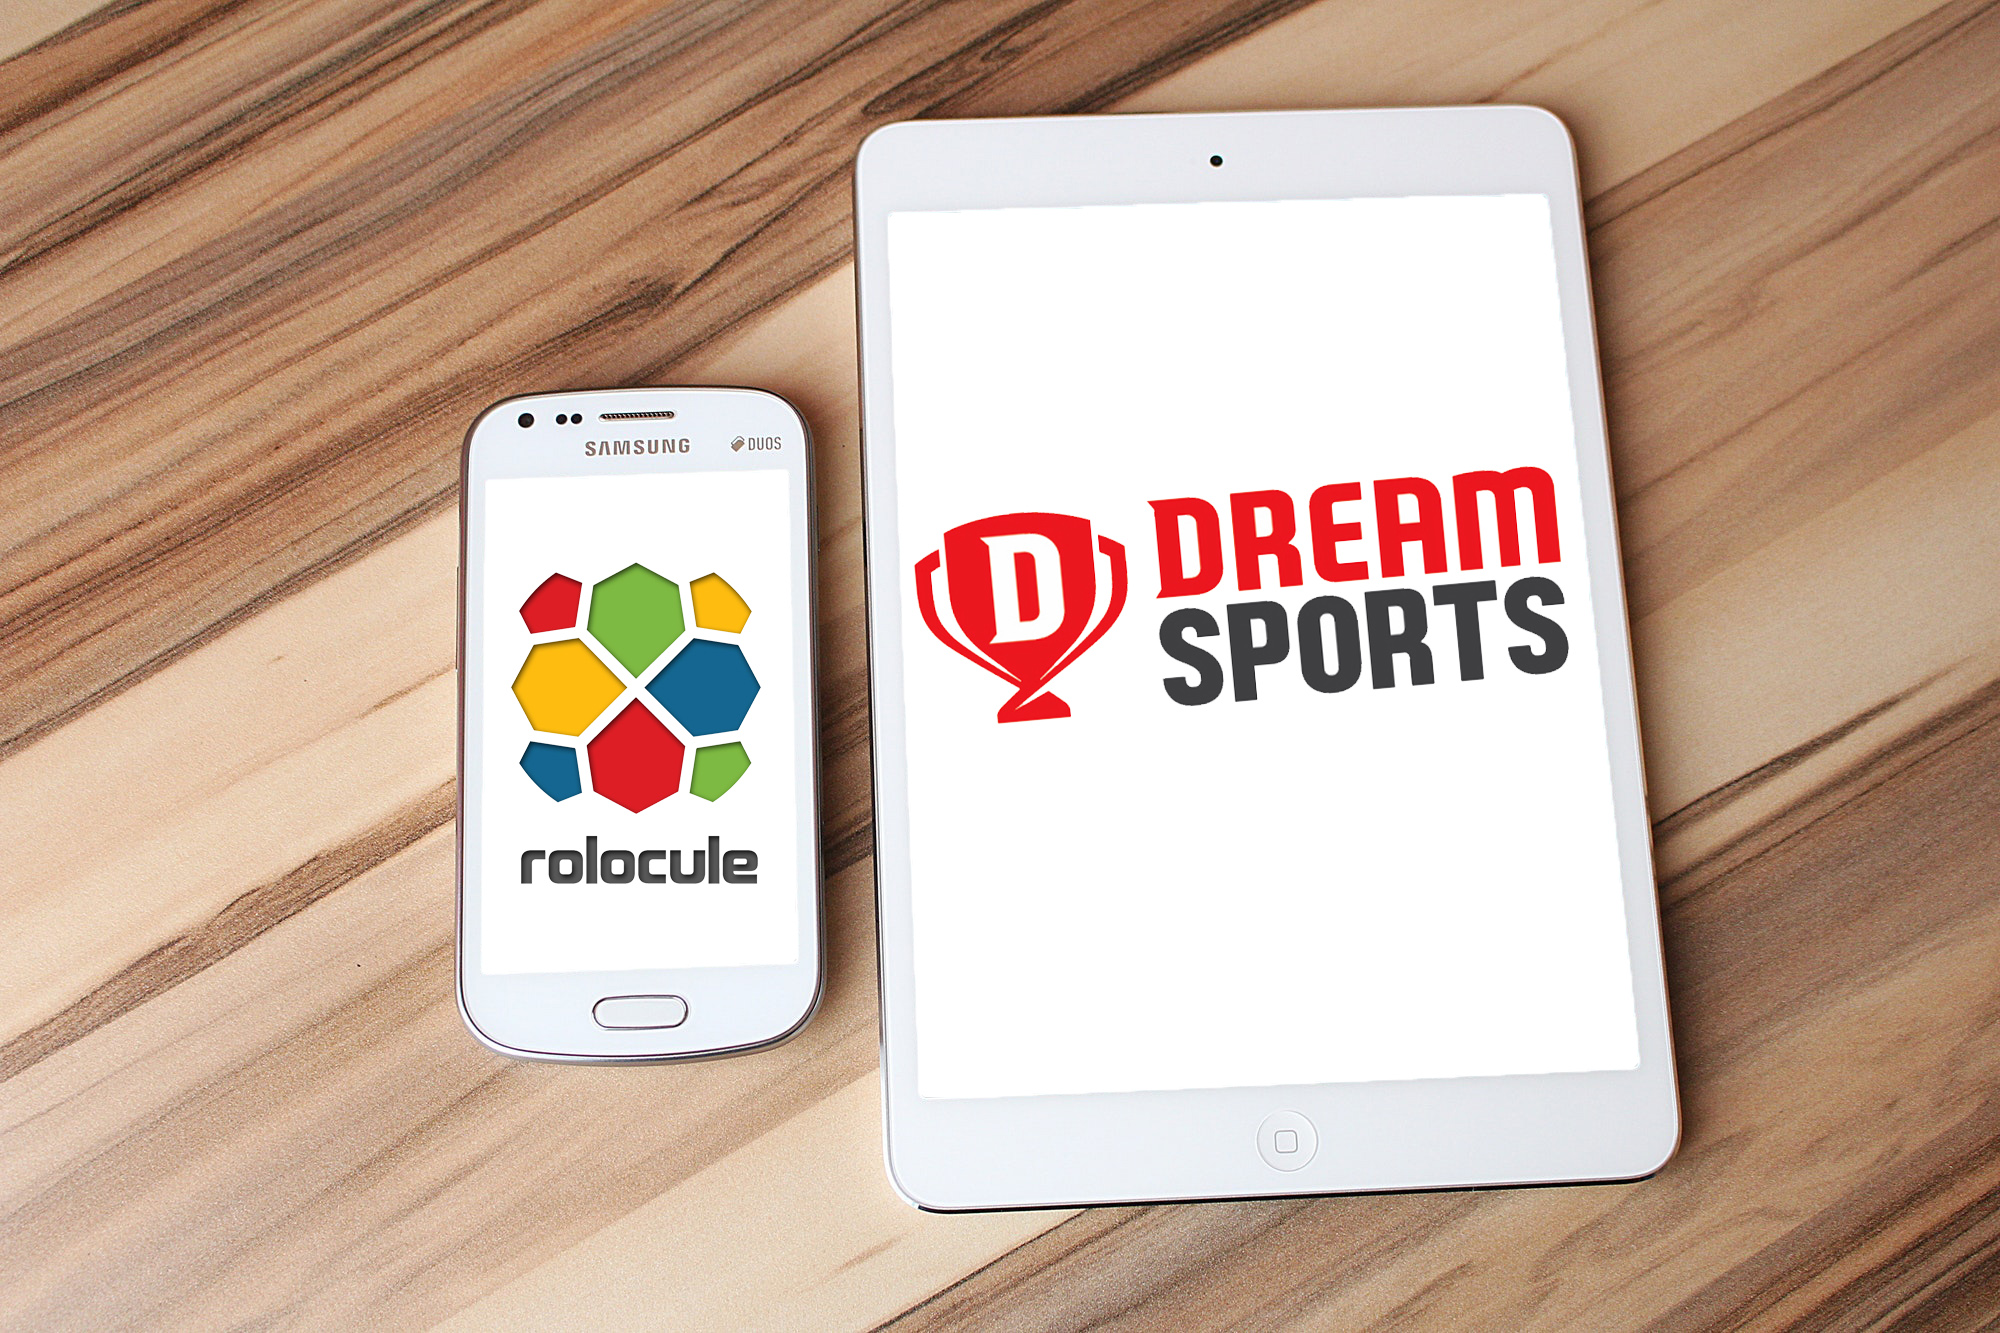 Dream Sports, Rolocule Games logo on White Ipad and Samsung Smartphone